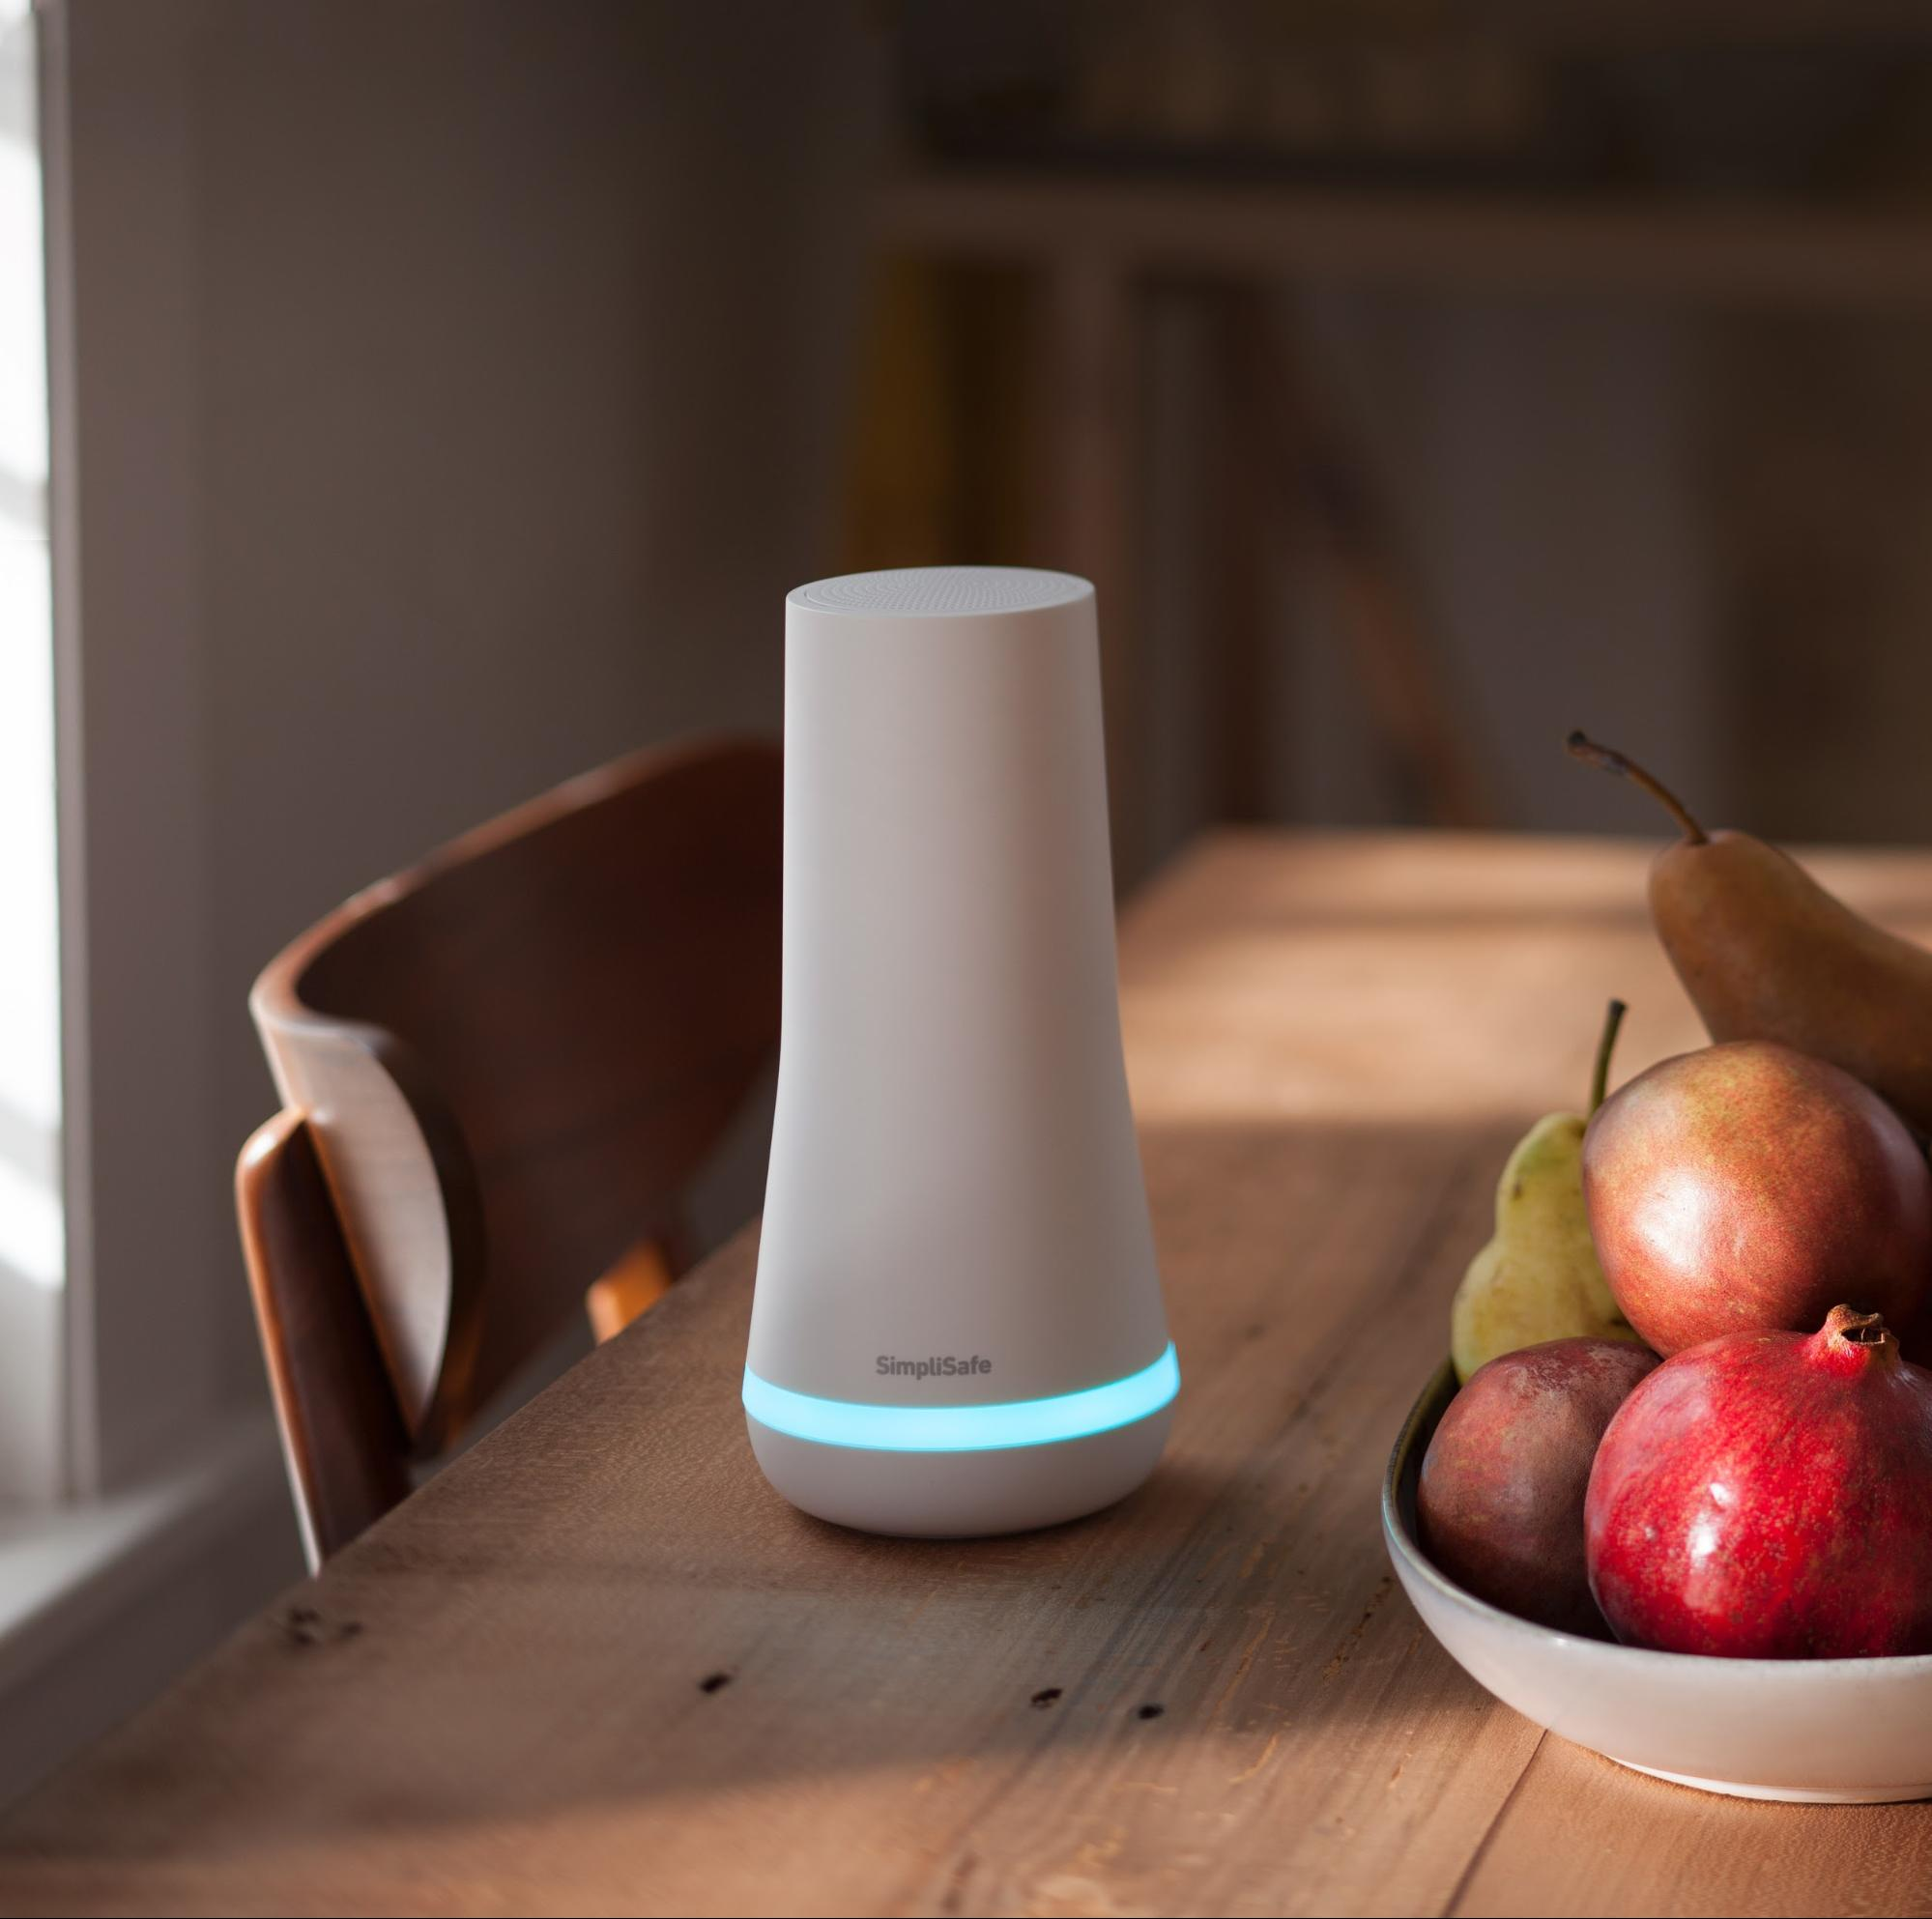 Simplisafe base station on dining room table